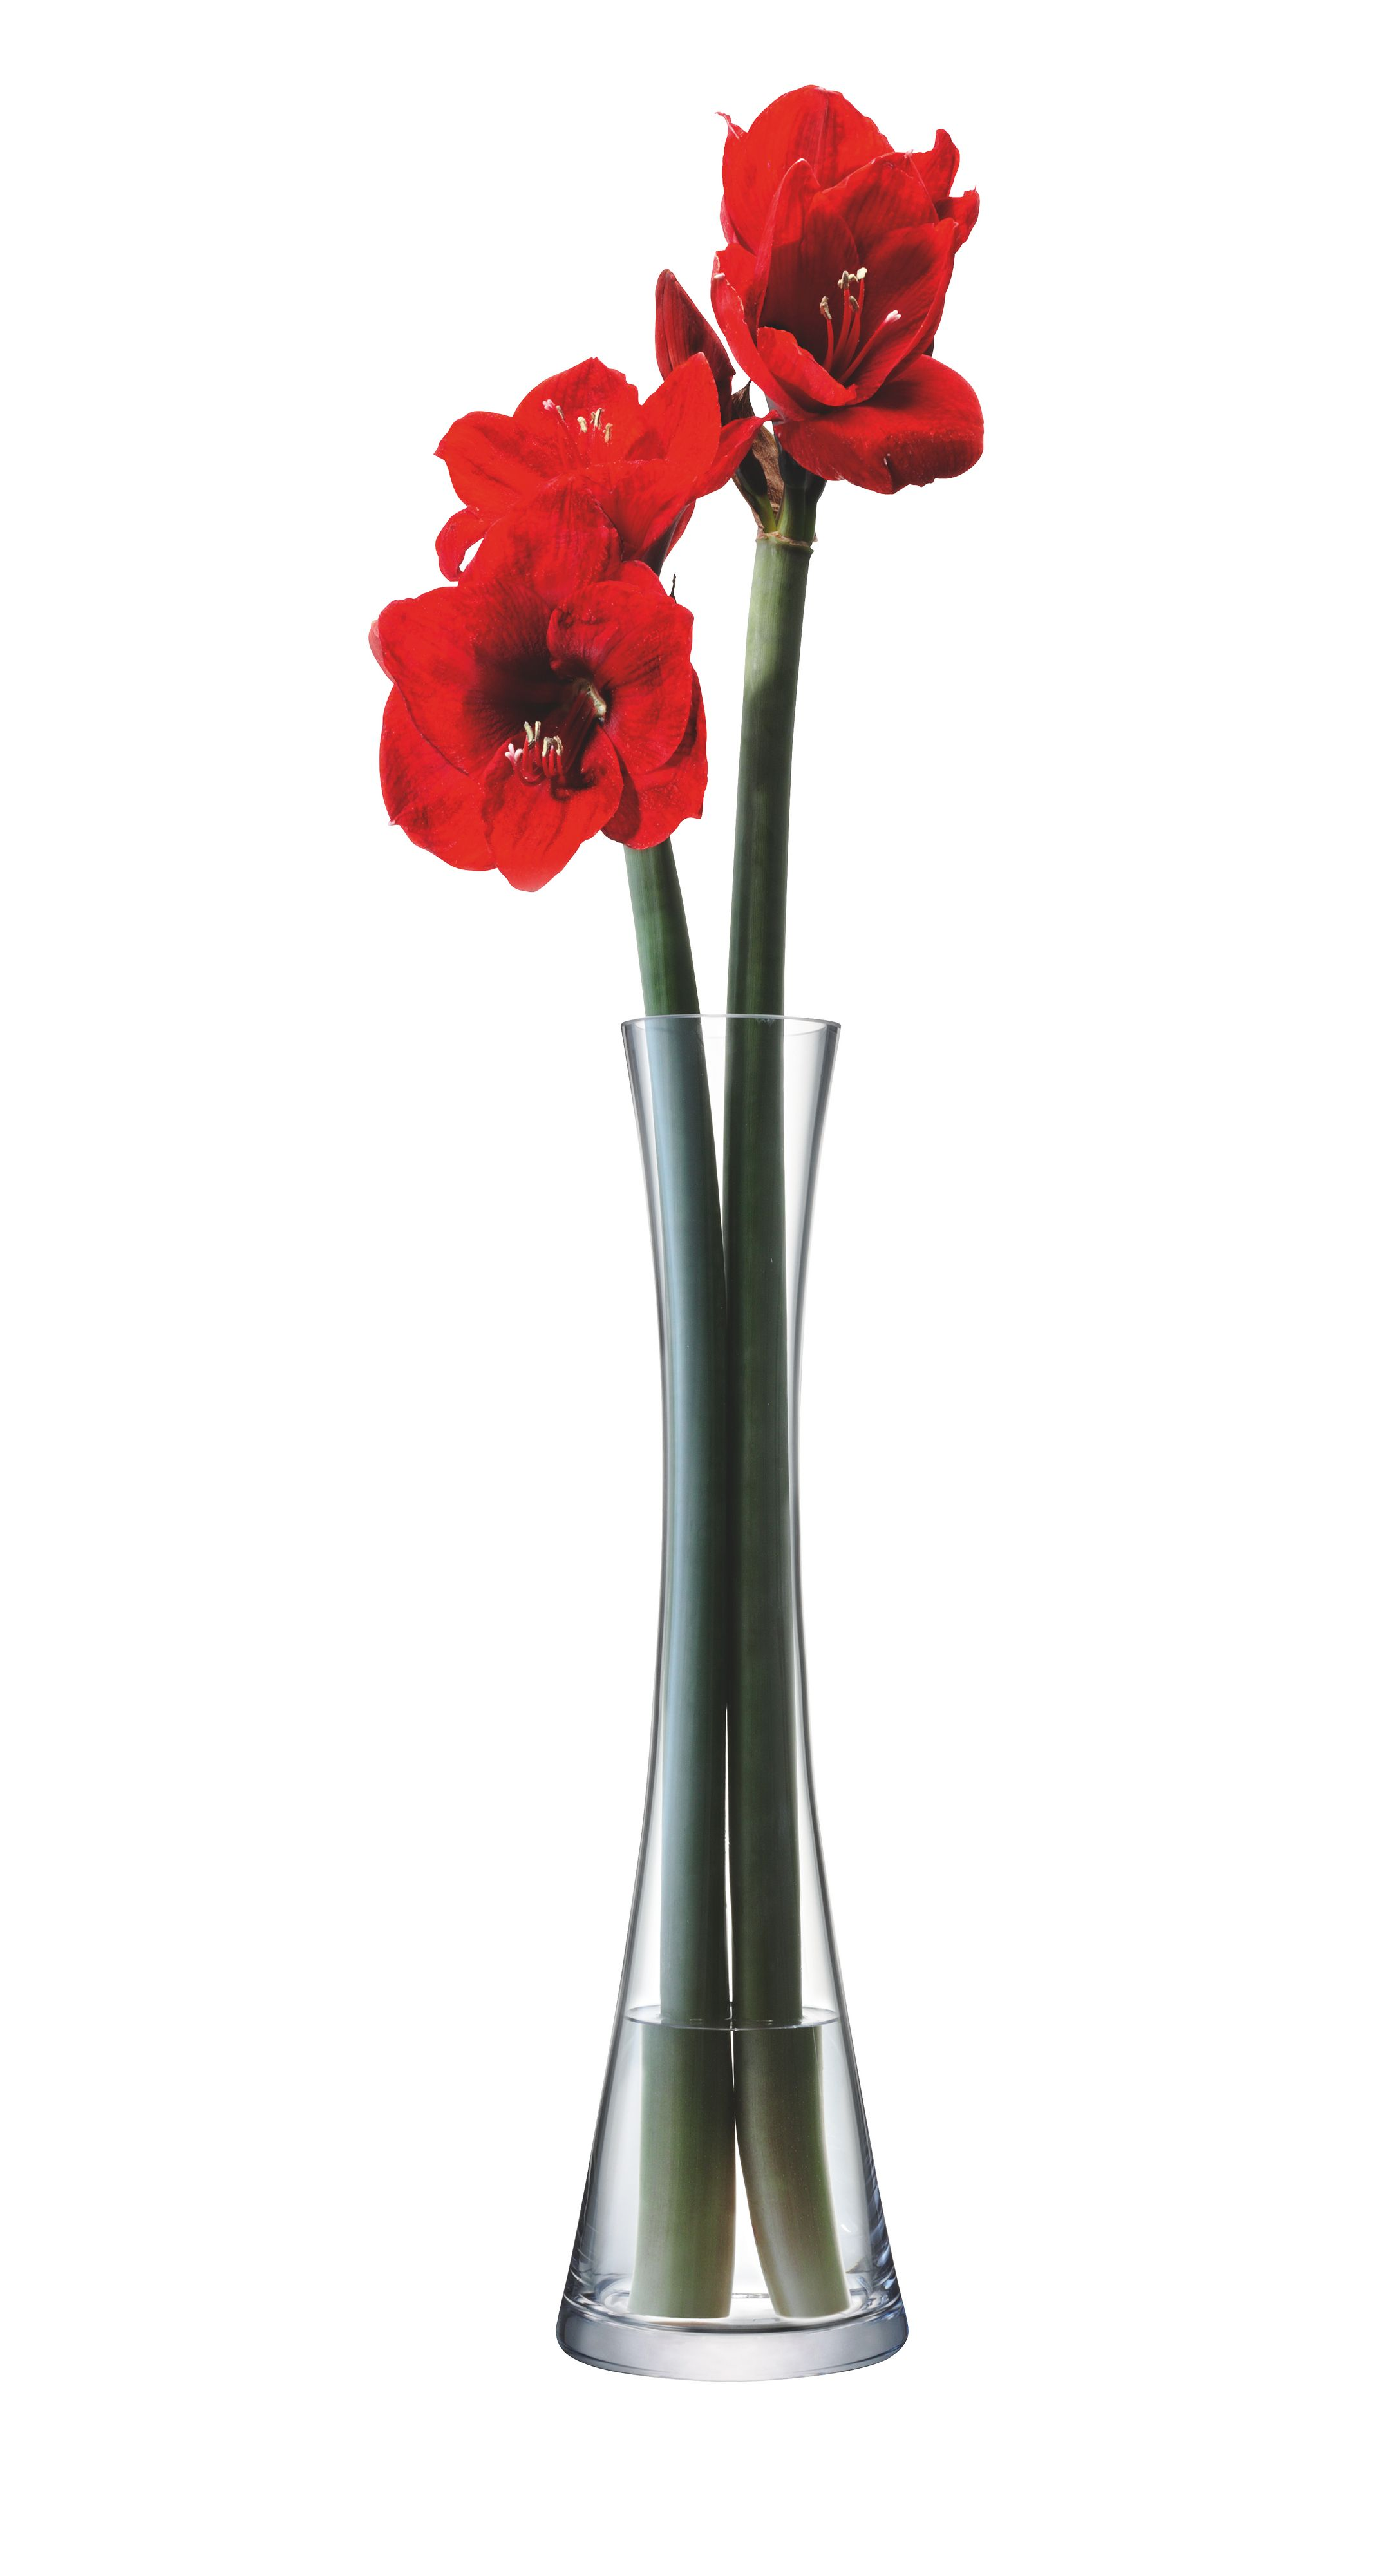 Tall single stem vase, clear, 50cm